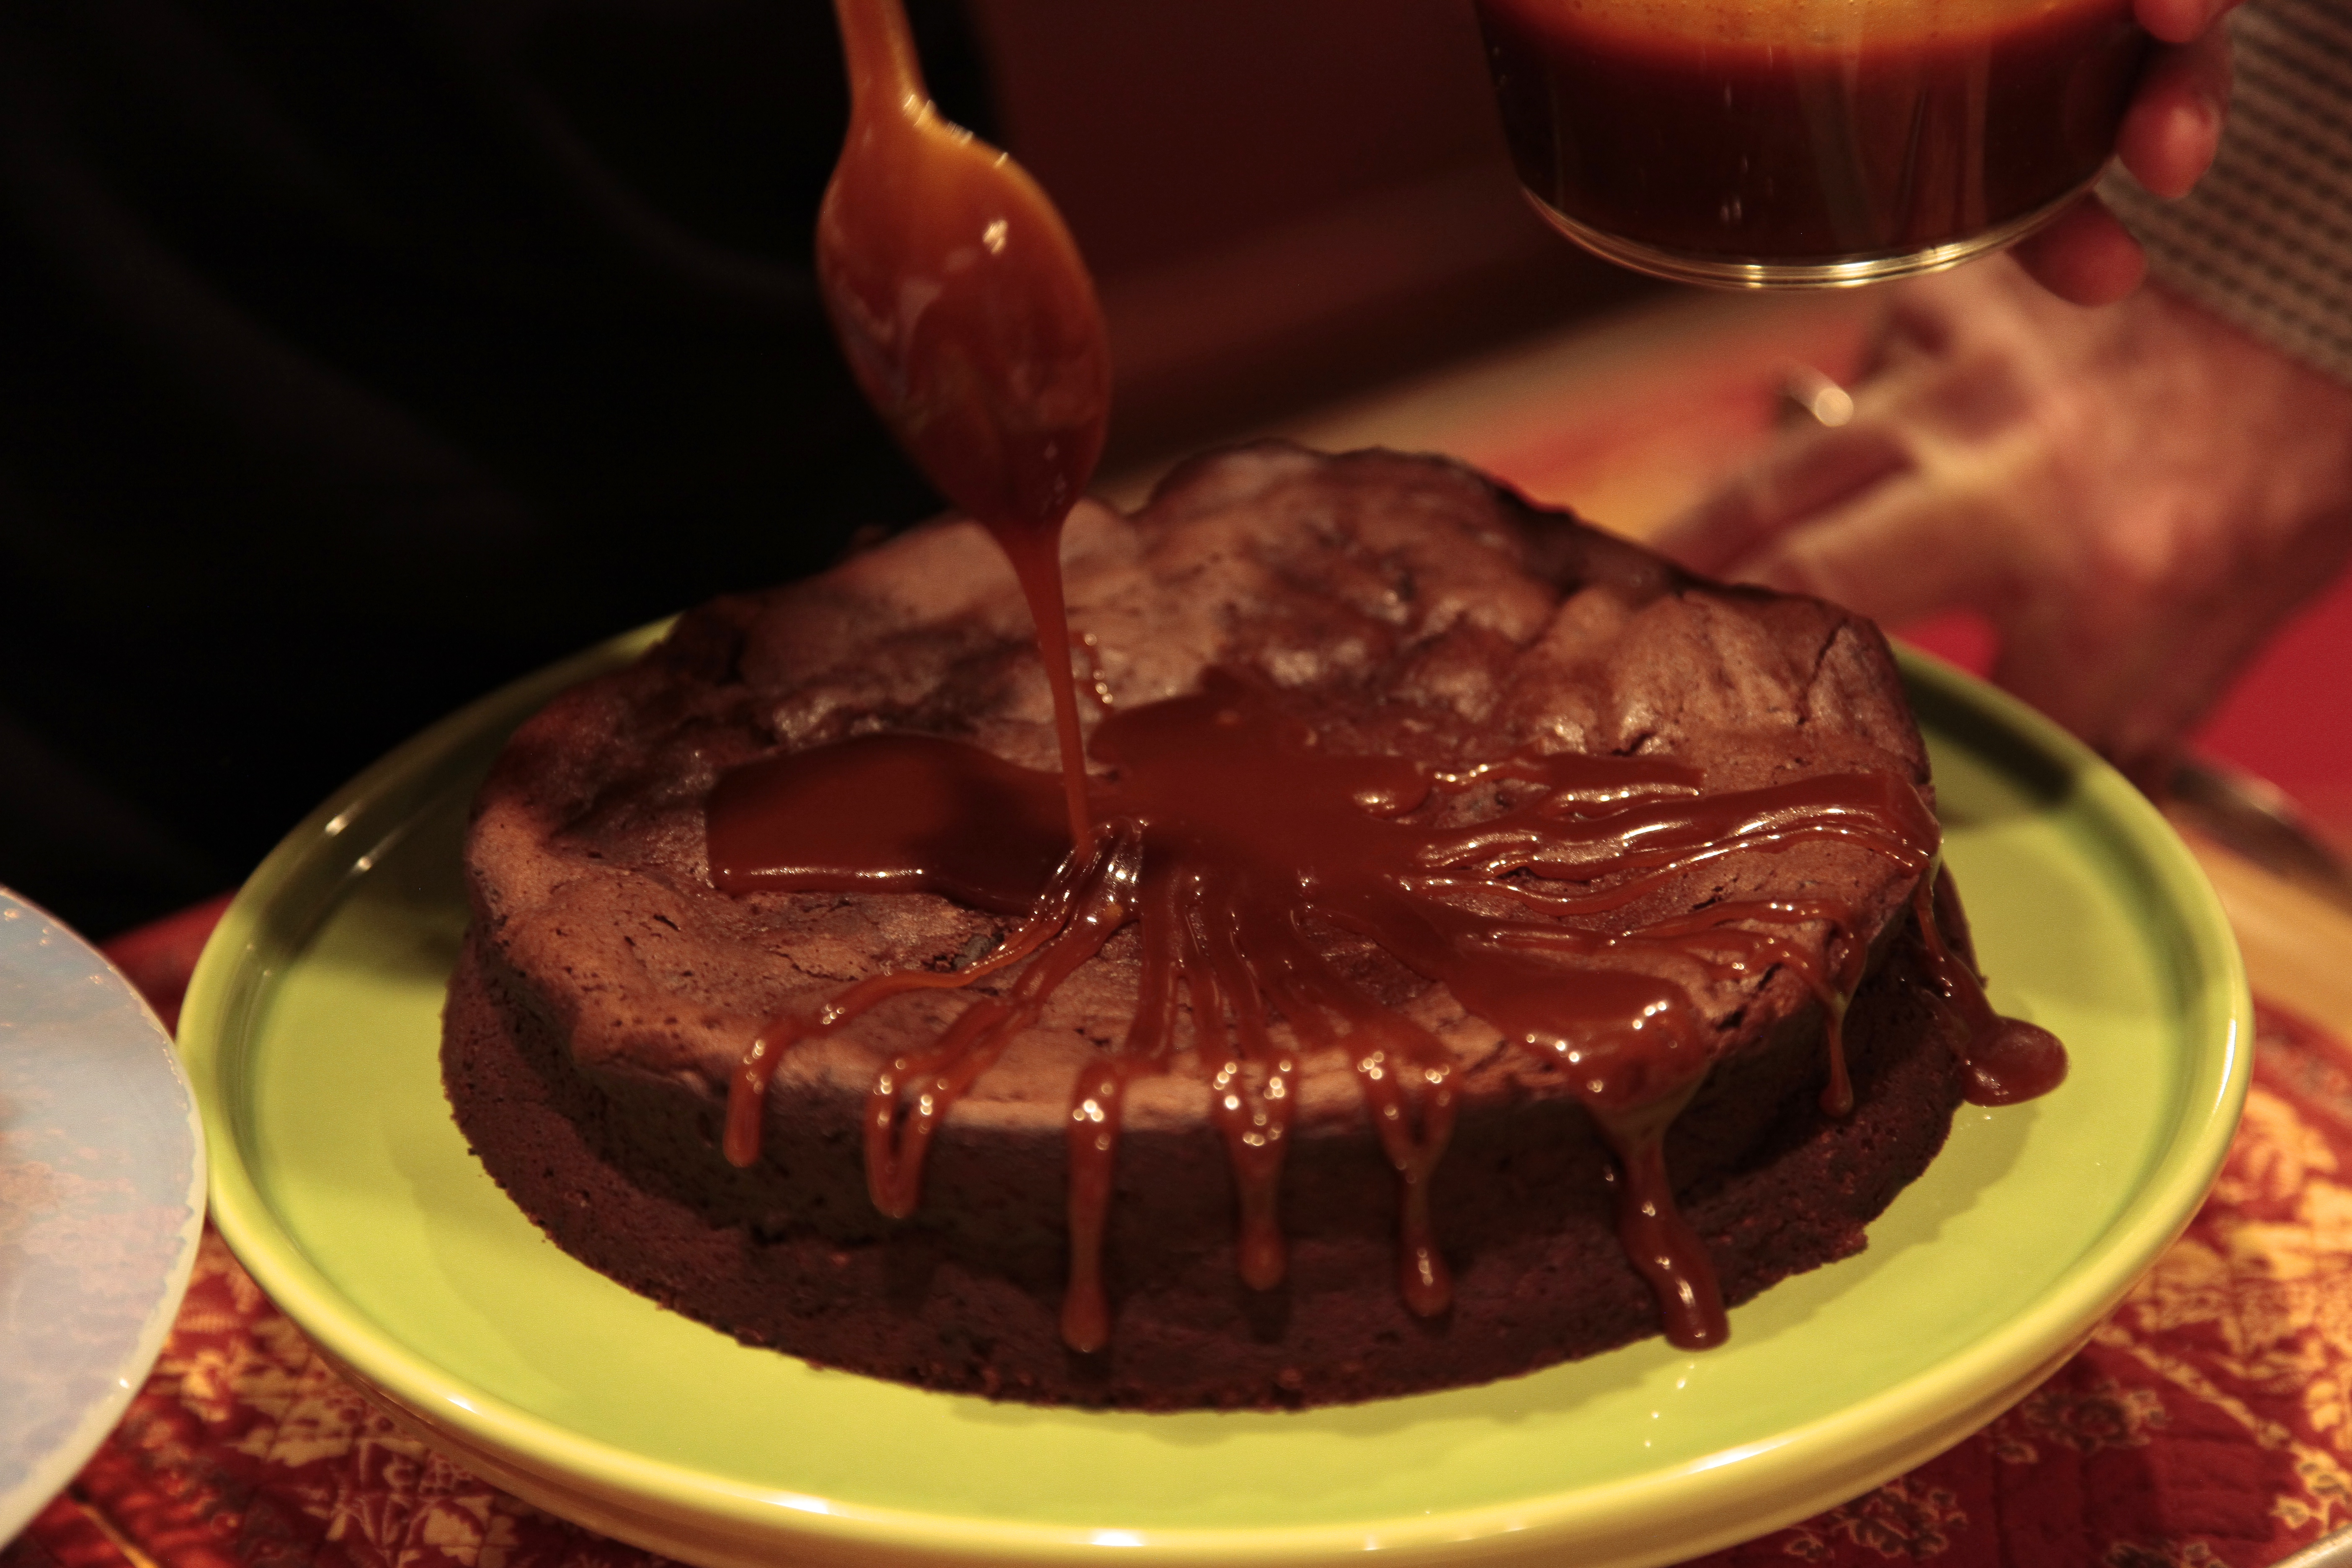 The Chocolate Prune Cake: YUMMY! (No further caption needed.)